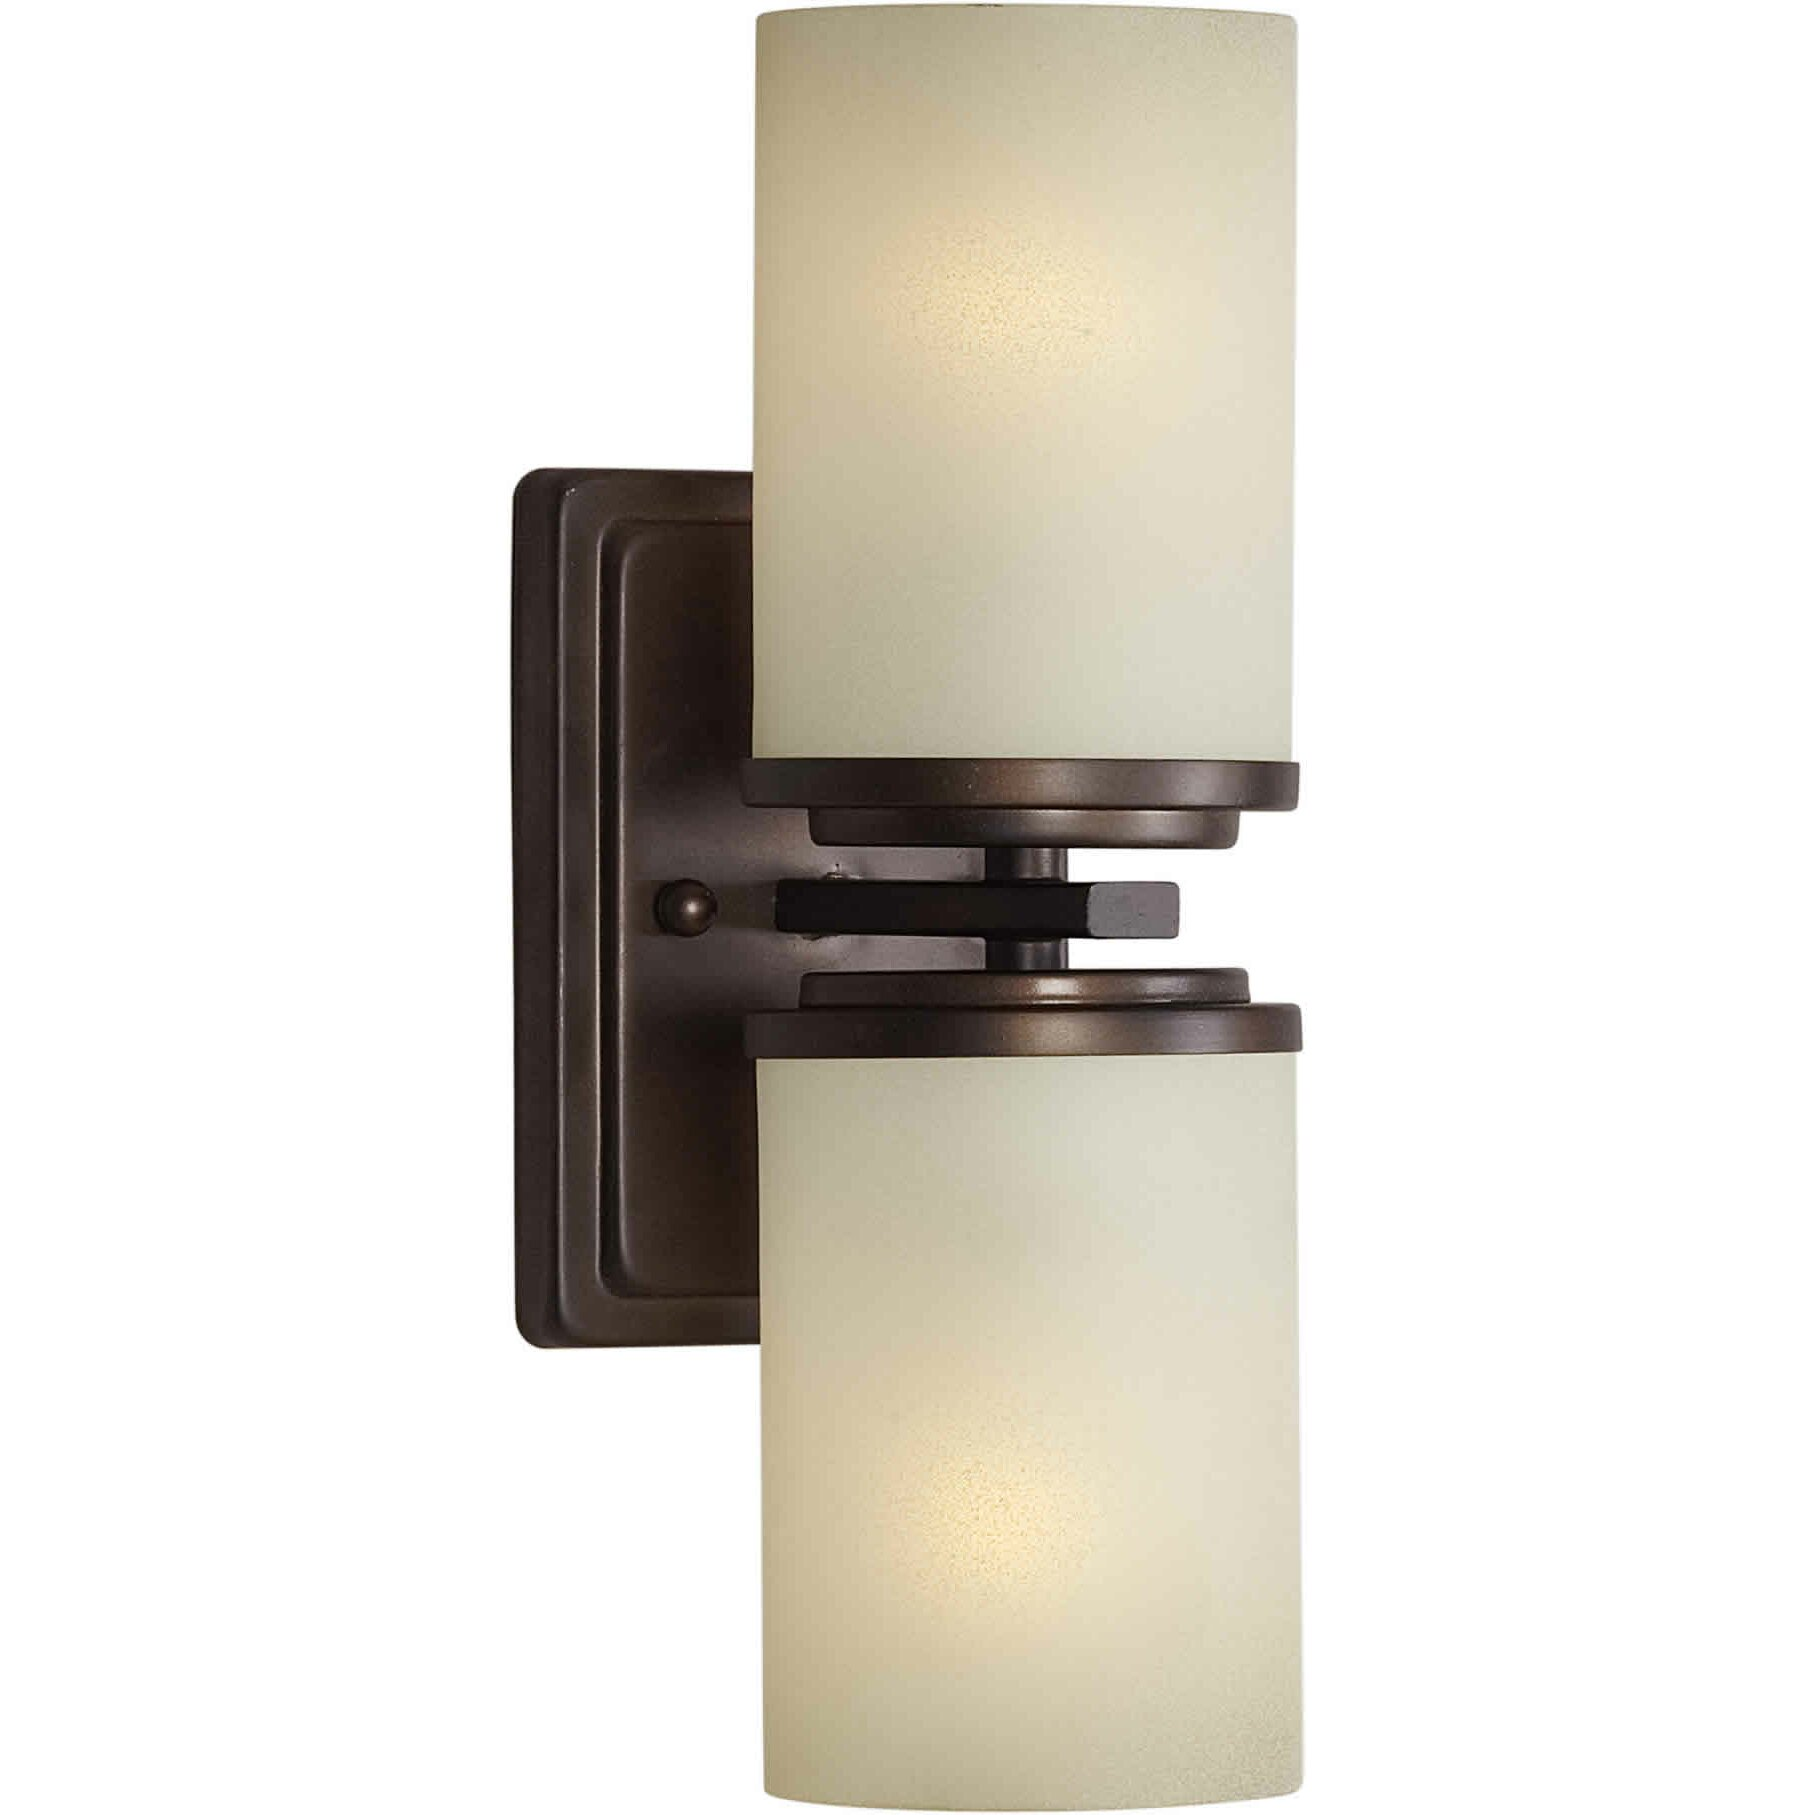 Wall Sconce Light Bulbs : Forte Lighting 2 Light Wall Sconce & Reviews Wayfair